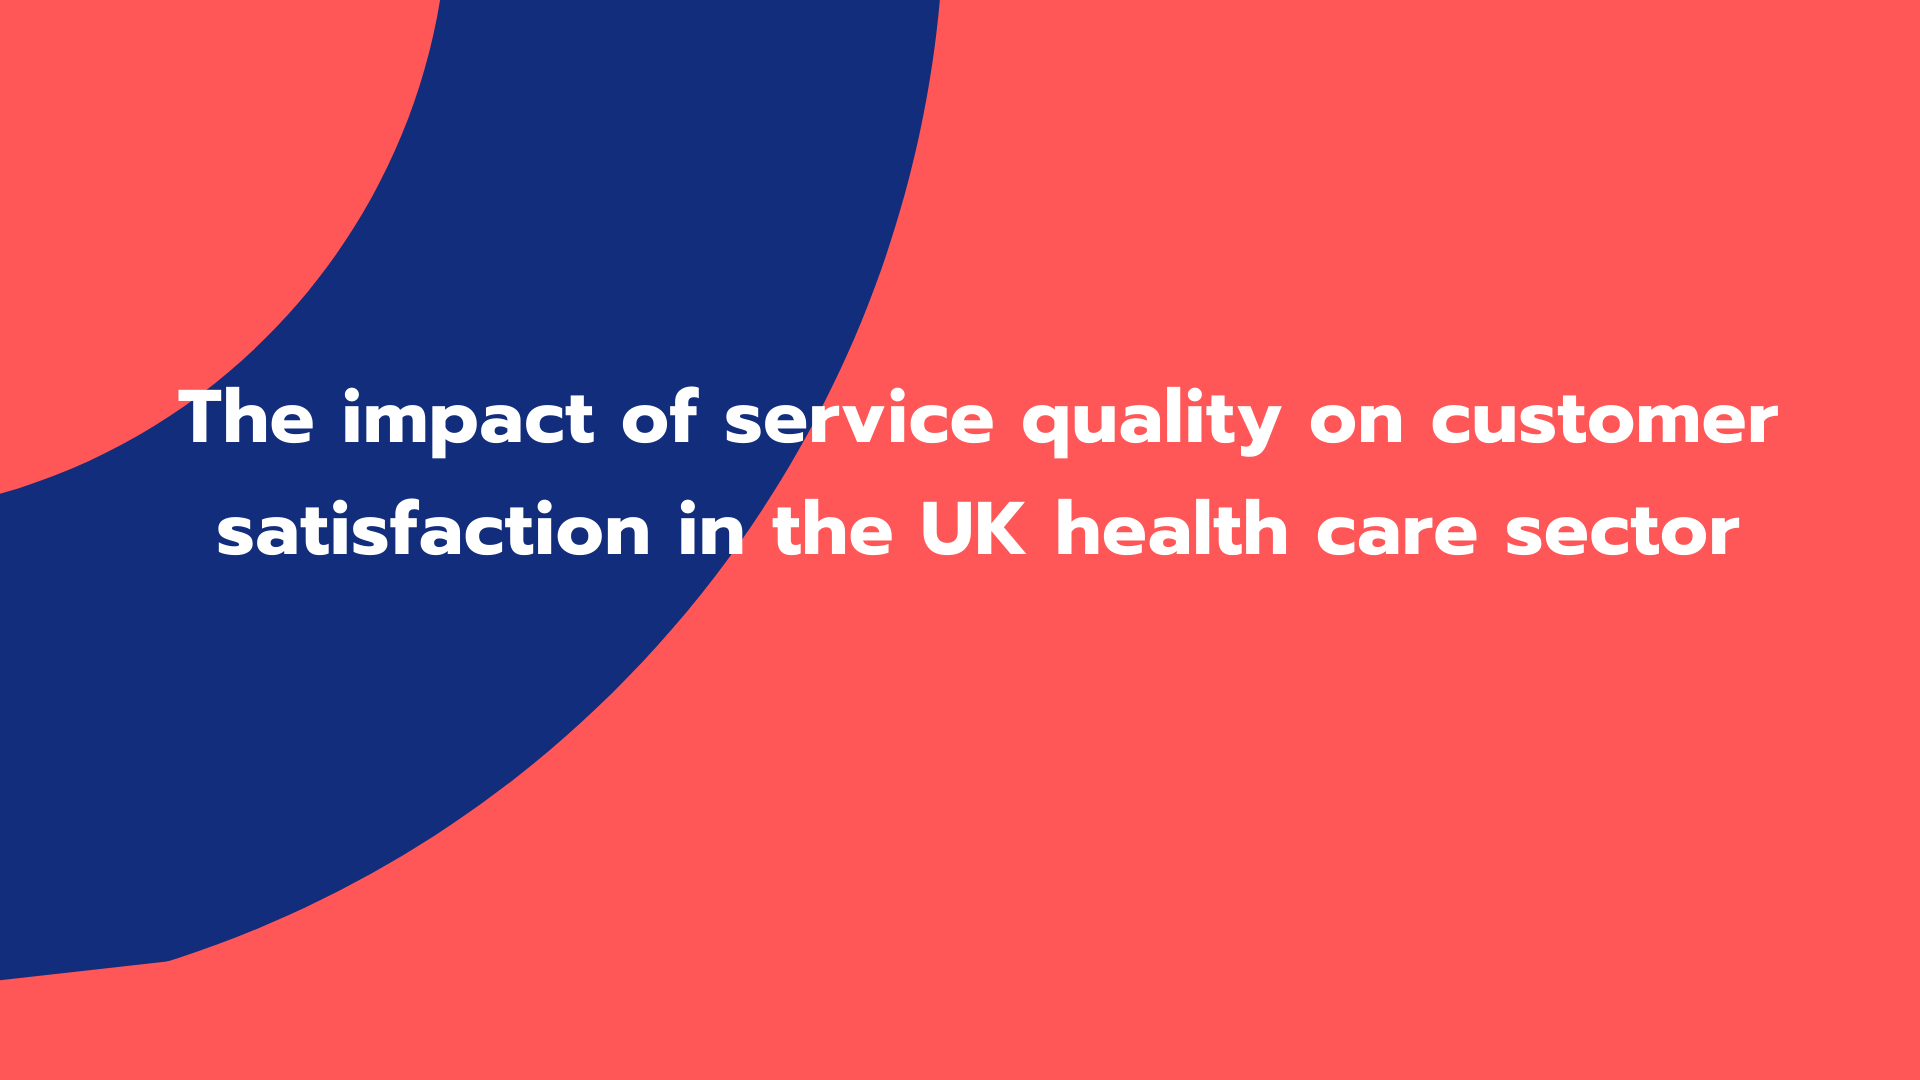 The impact of service quality on customer satisfaction in the UK health care sector